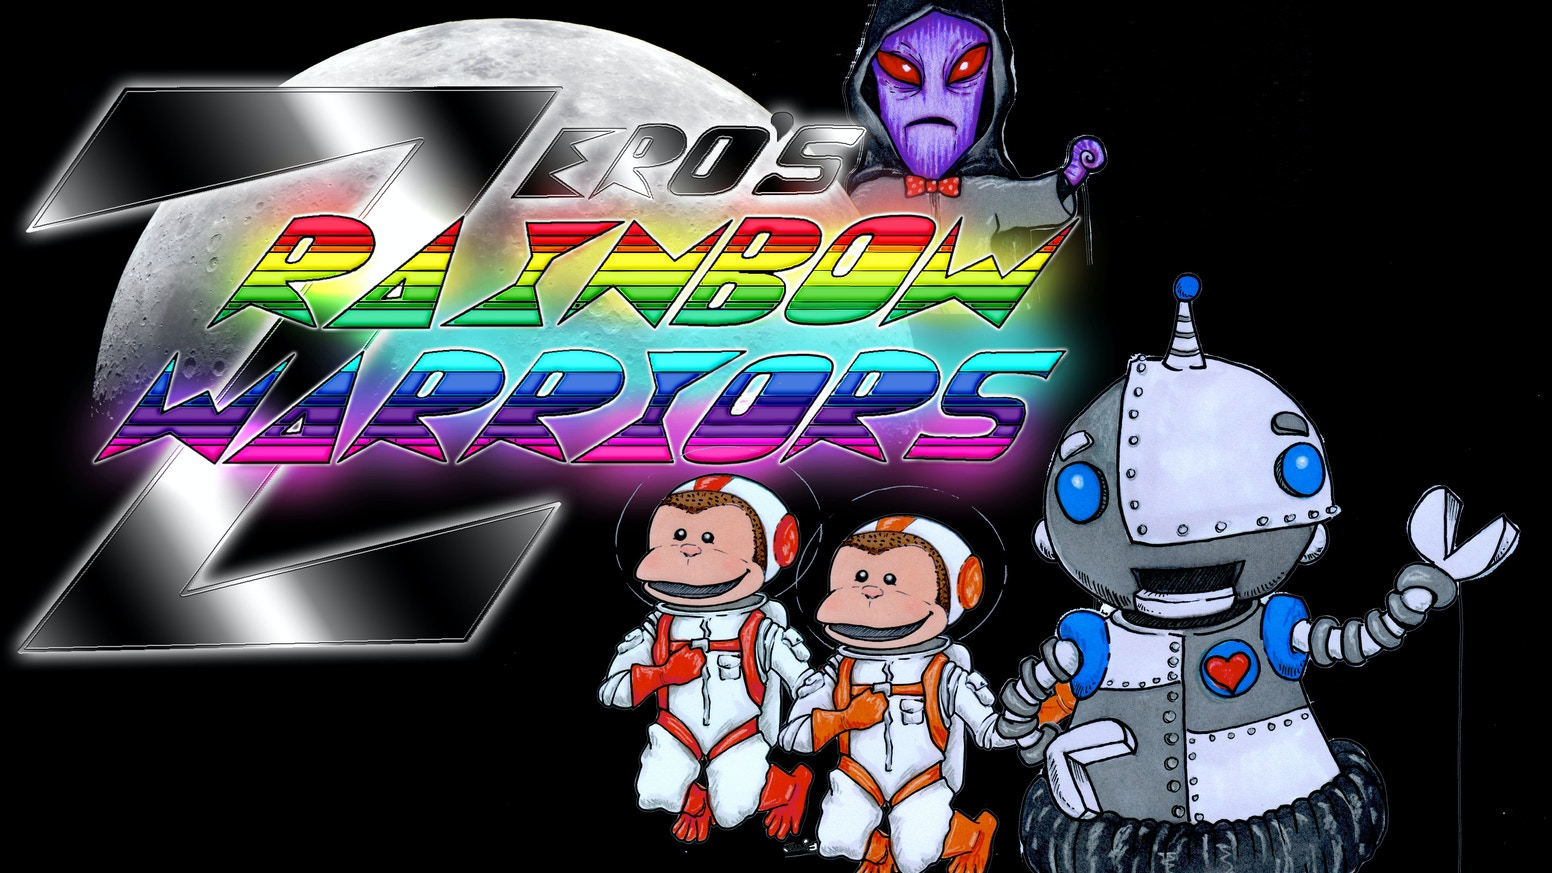 1355f21620 A puppet space TV show for preschool kids about outer space and inner  emotions.